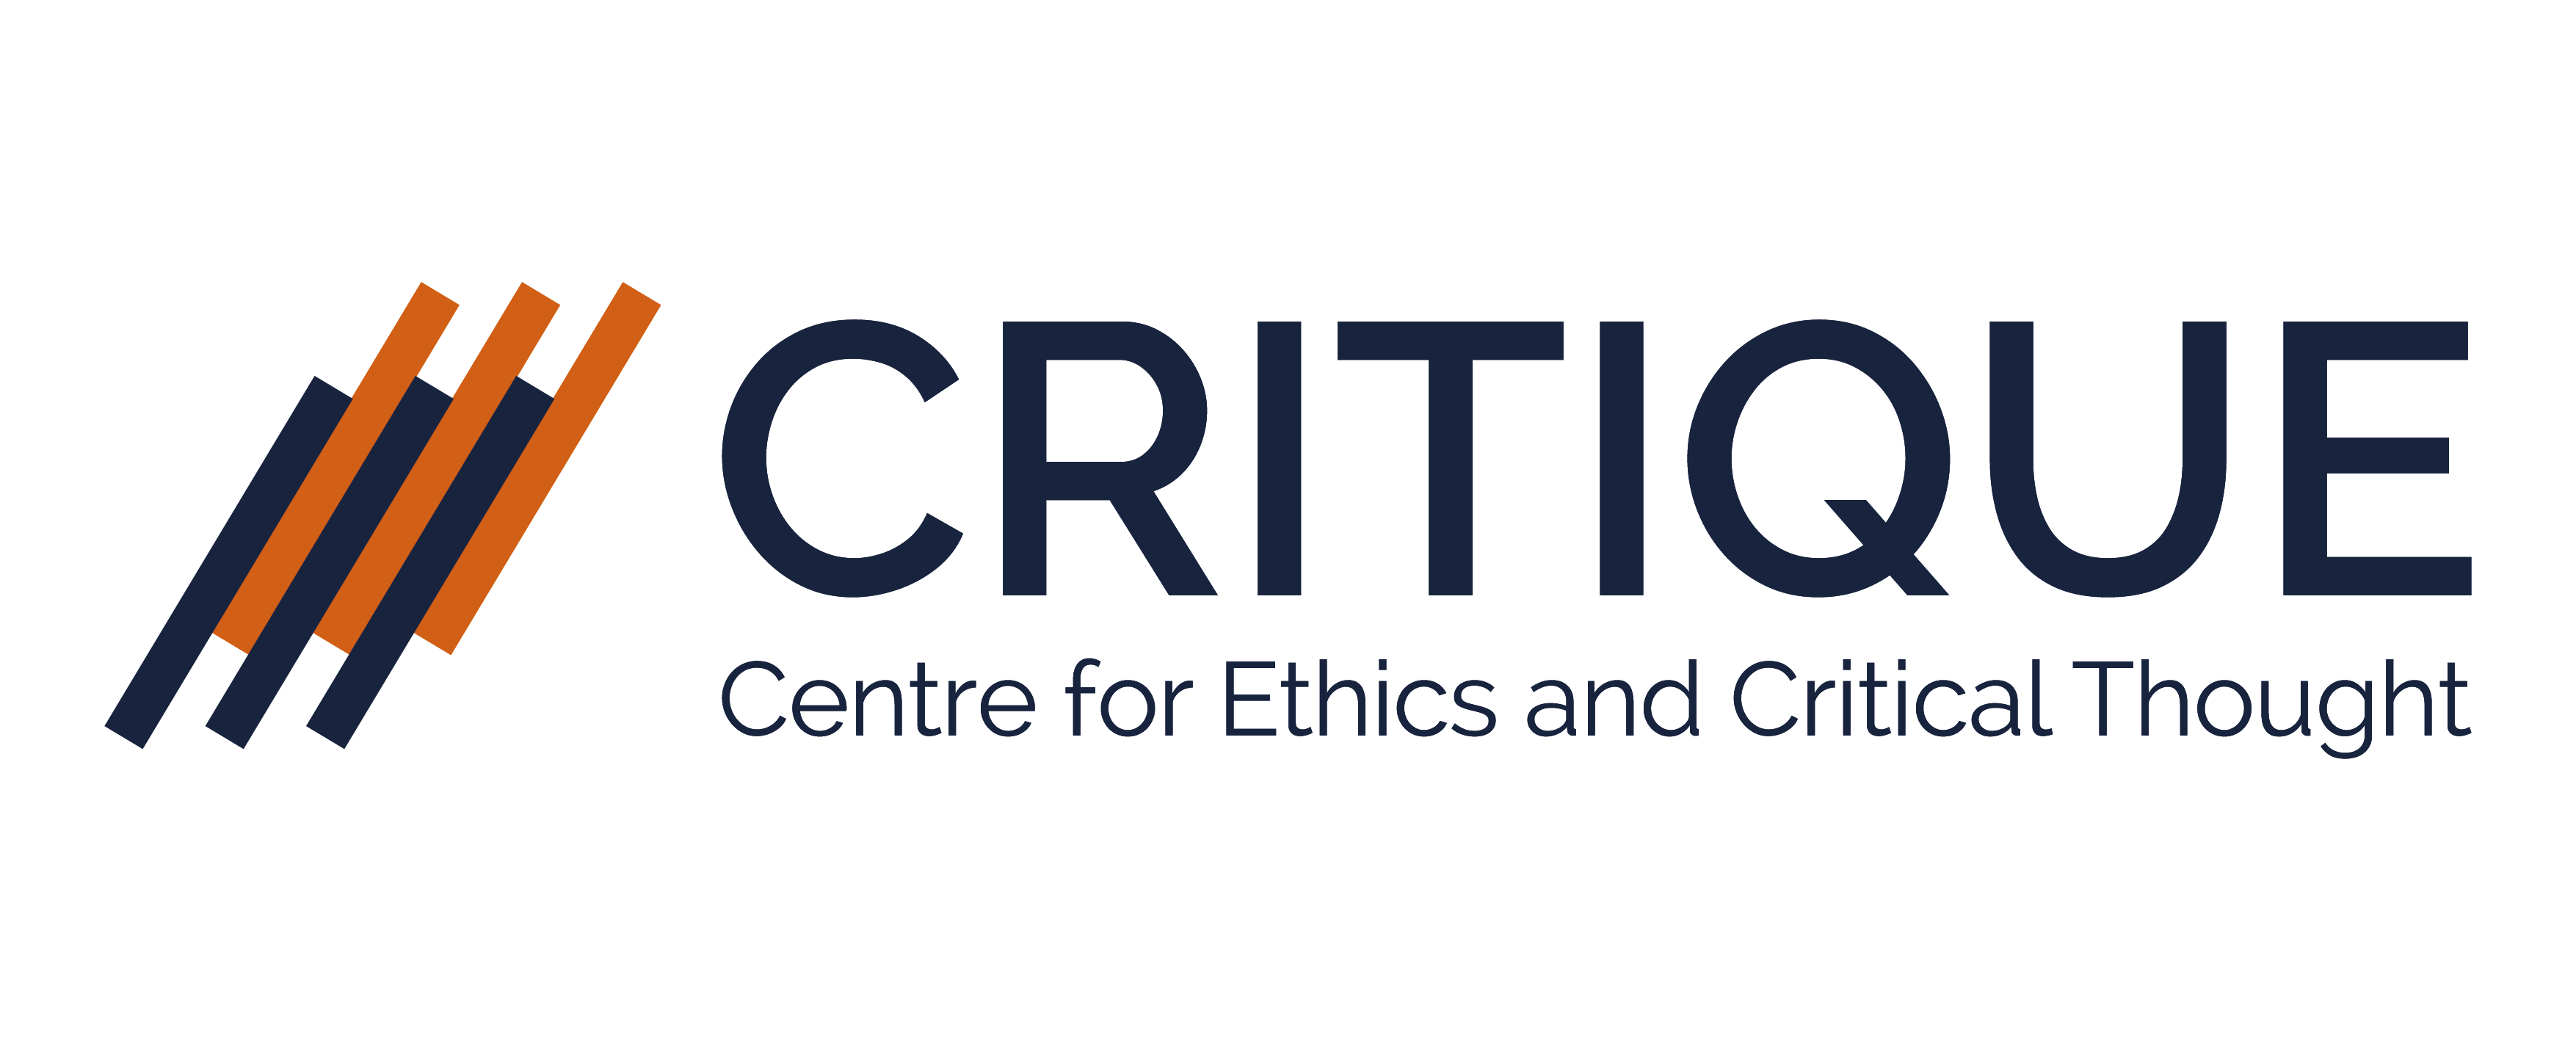 CRITIQUE - Centre for Ethics and Critical Thought